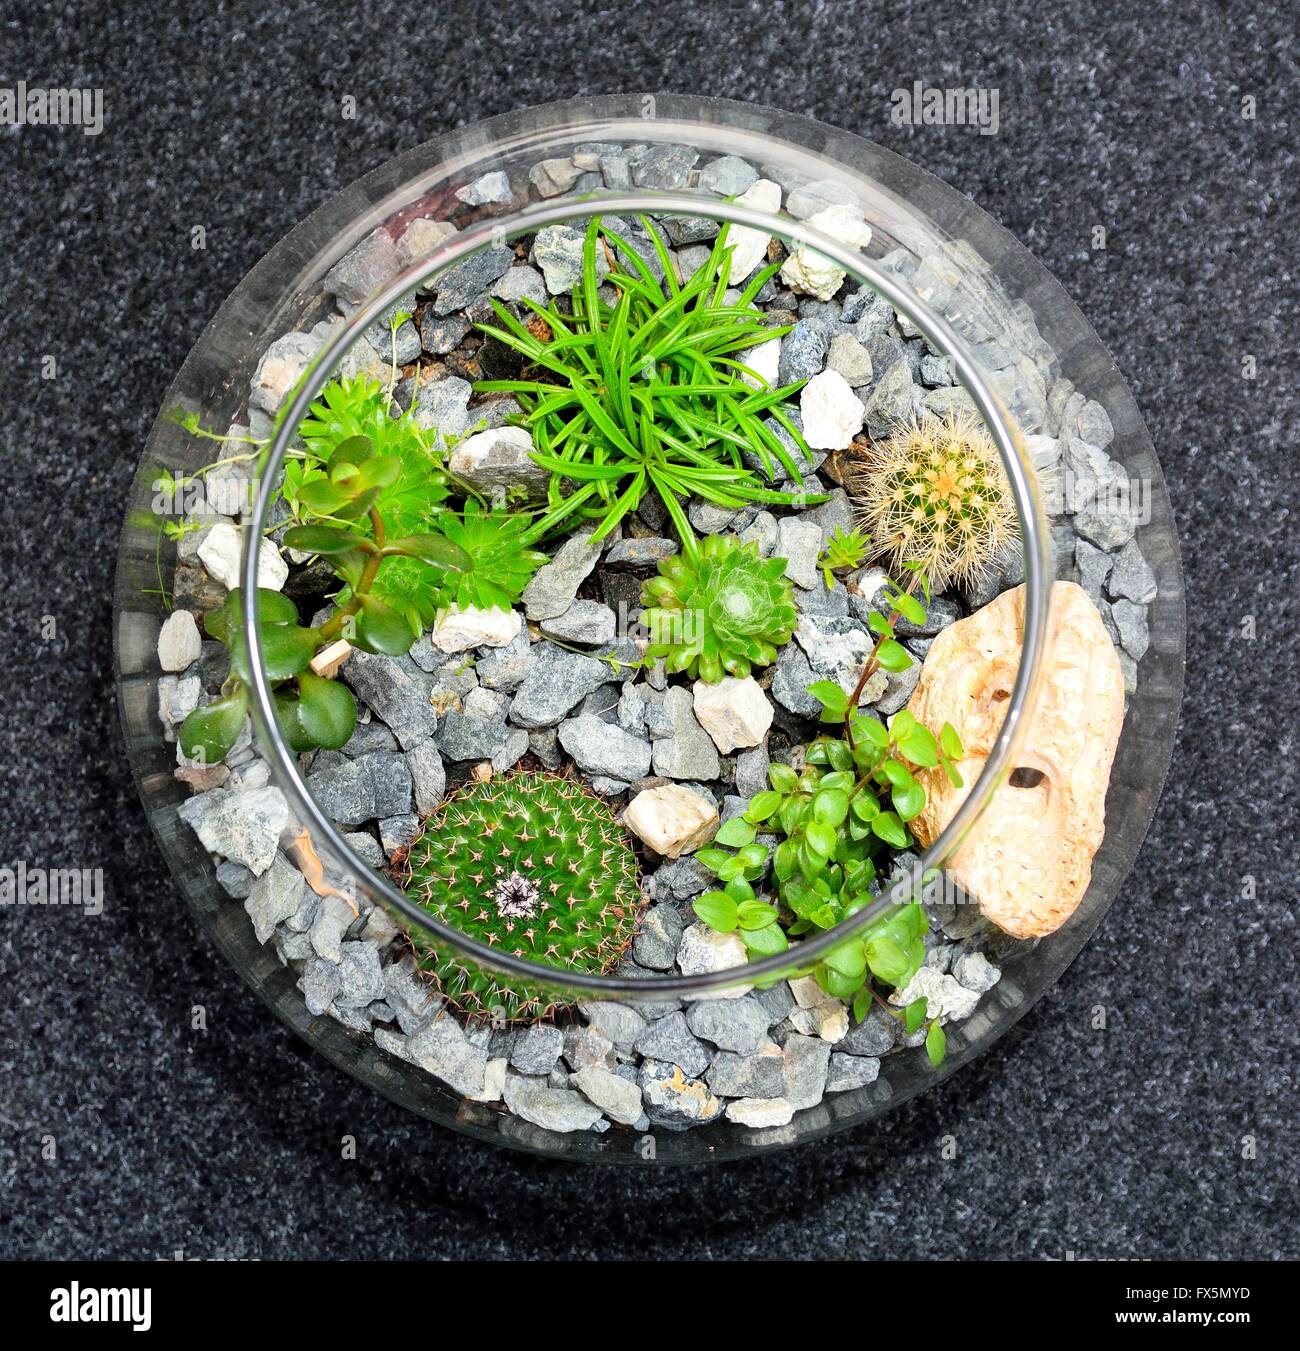 Table top indoor decorative miniature garden in clear glass bubble ...